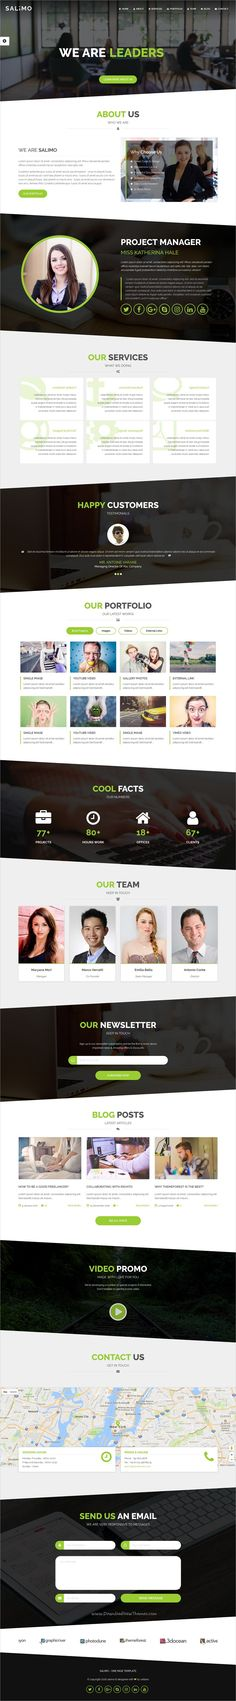 Salimo is a creative #onepage responsive HTML #Bootstrap template for #webdev multipurpose corporate business website with 7 homepage layouts download now➩ https://themeforest.net/item/salimo-creative-one-page-template/19128817?ref=Datasata